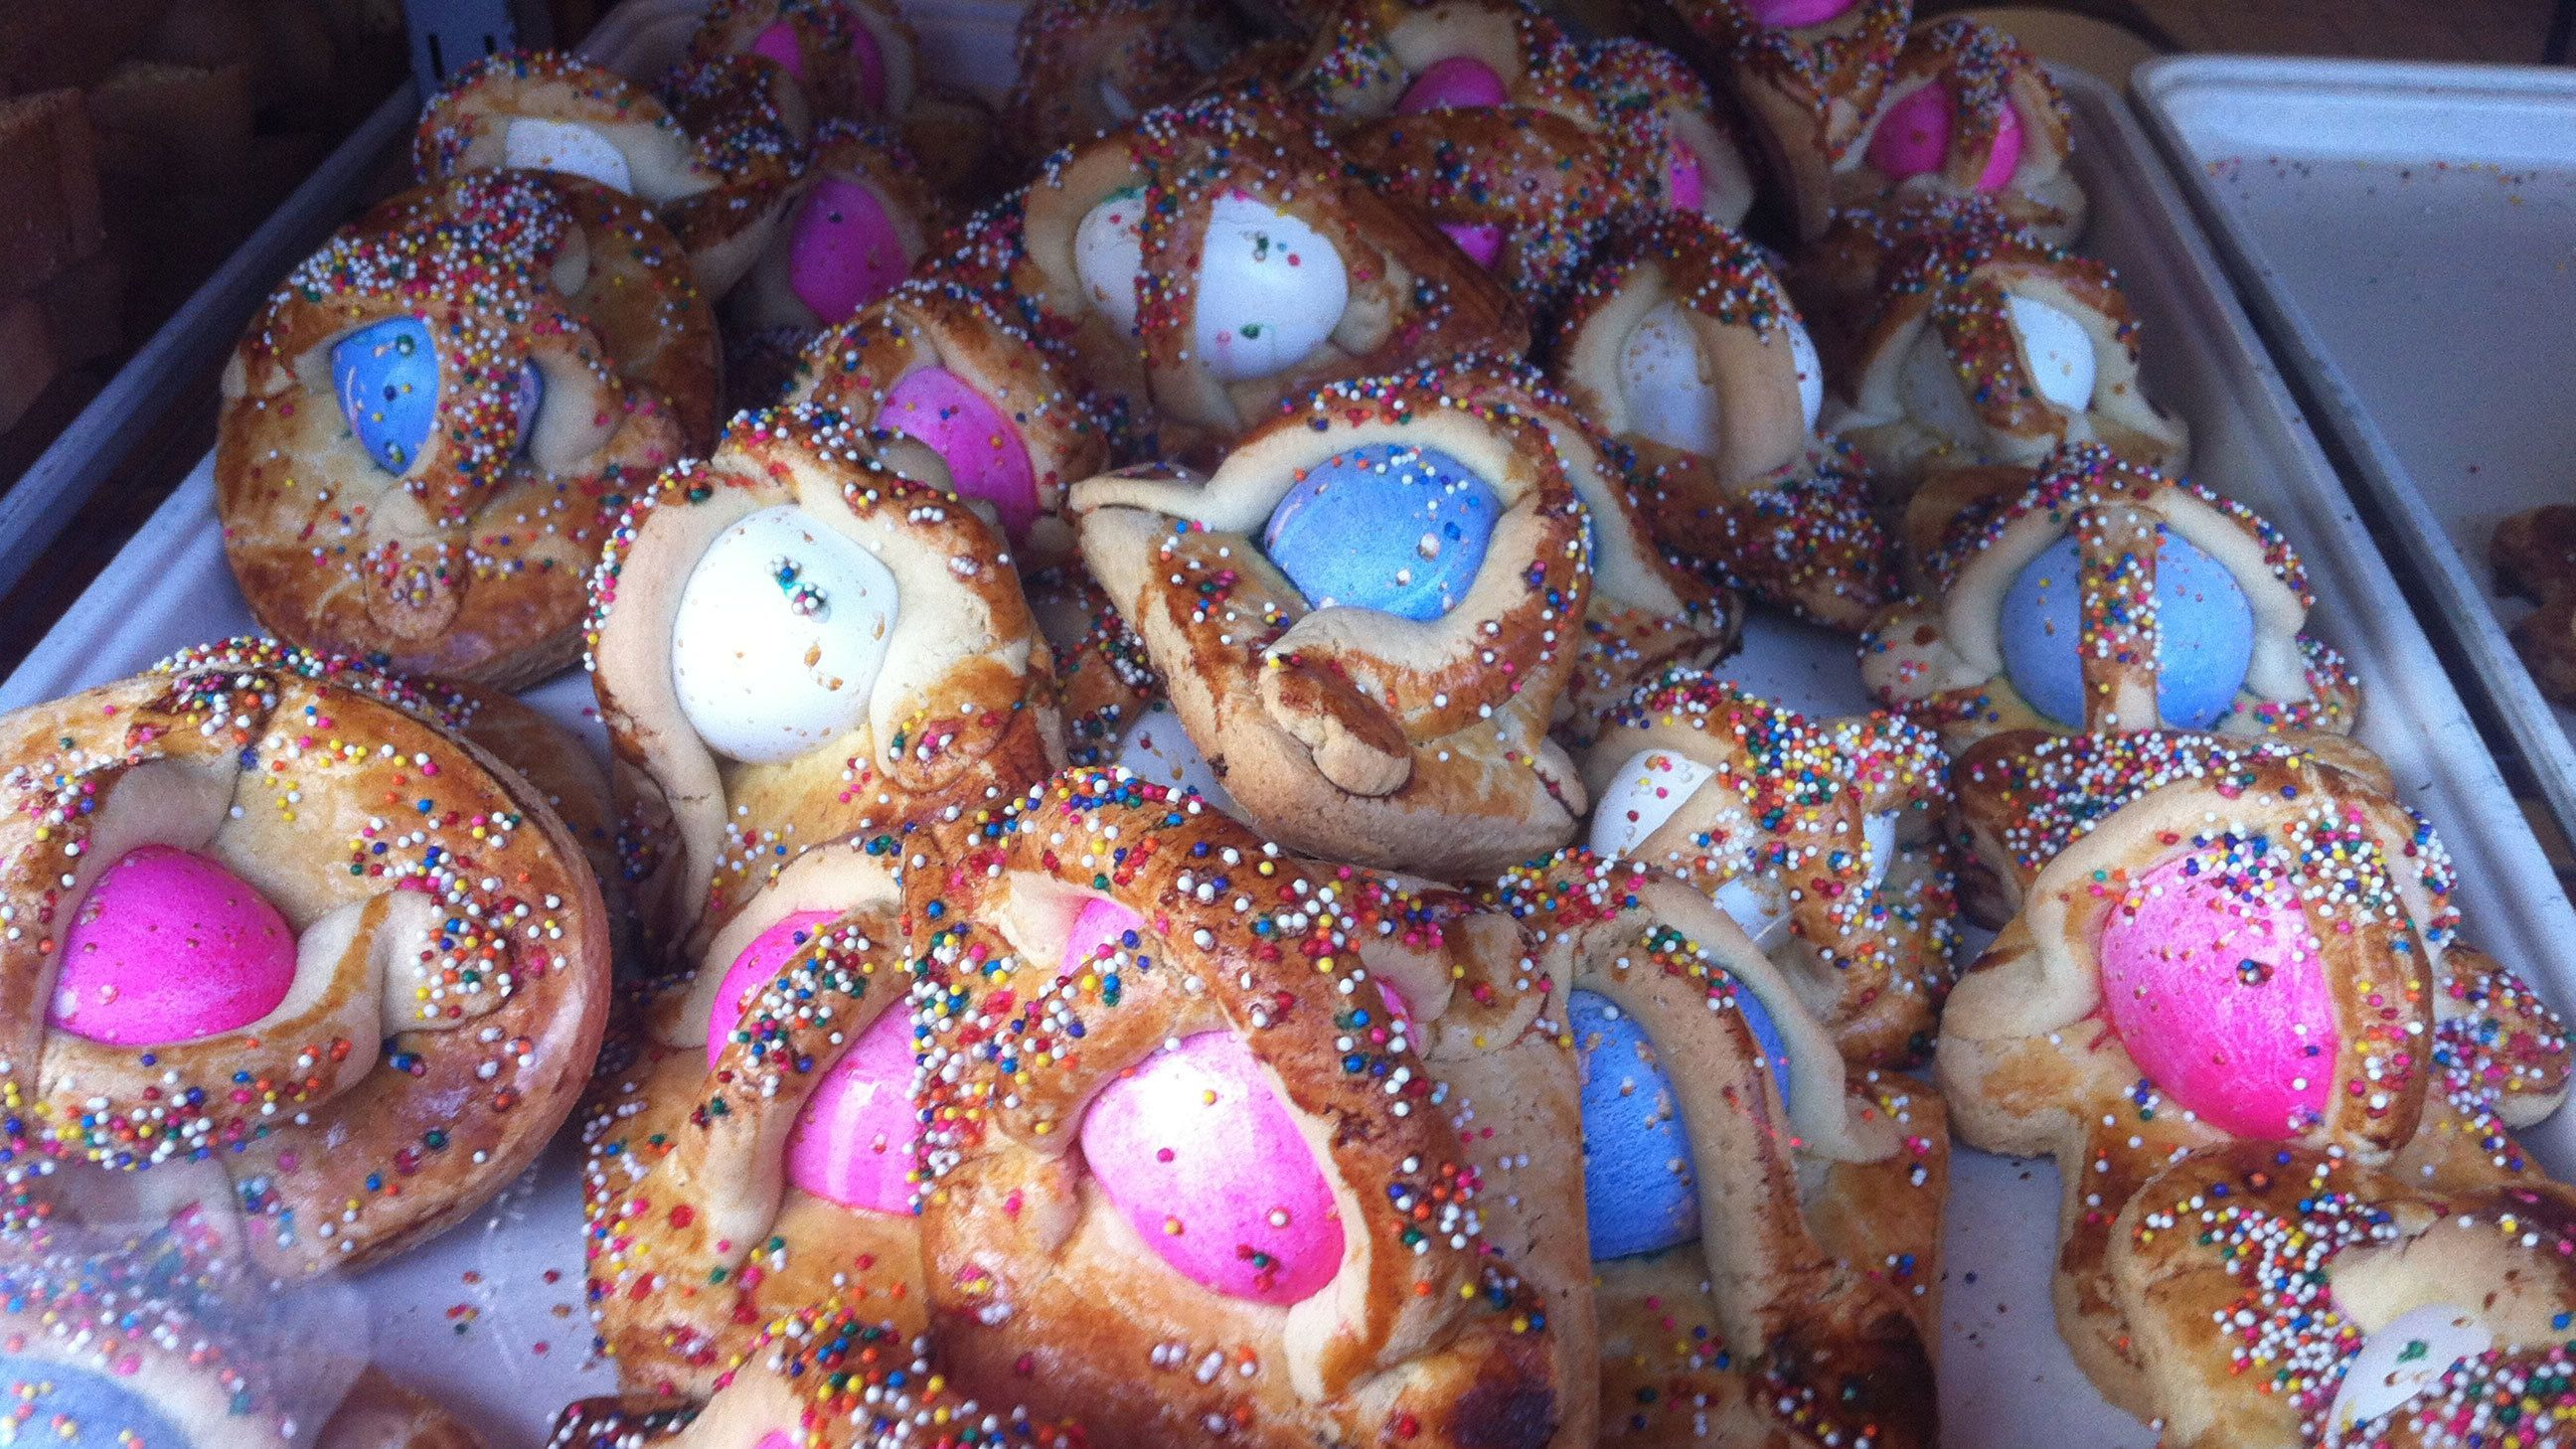 Italian Easter bread with dyed eggs